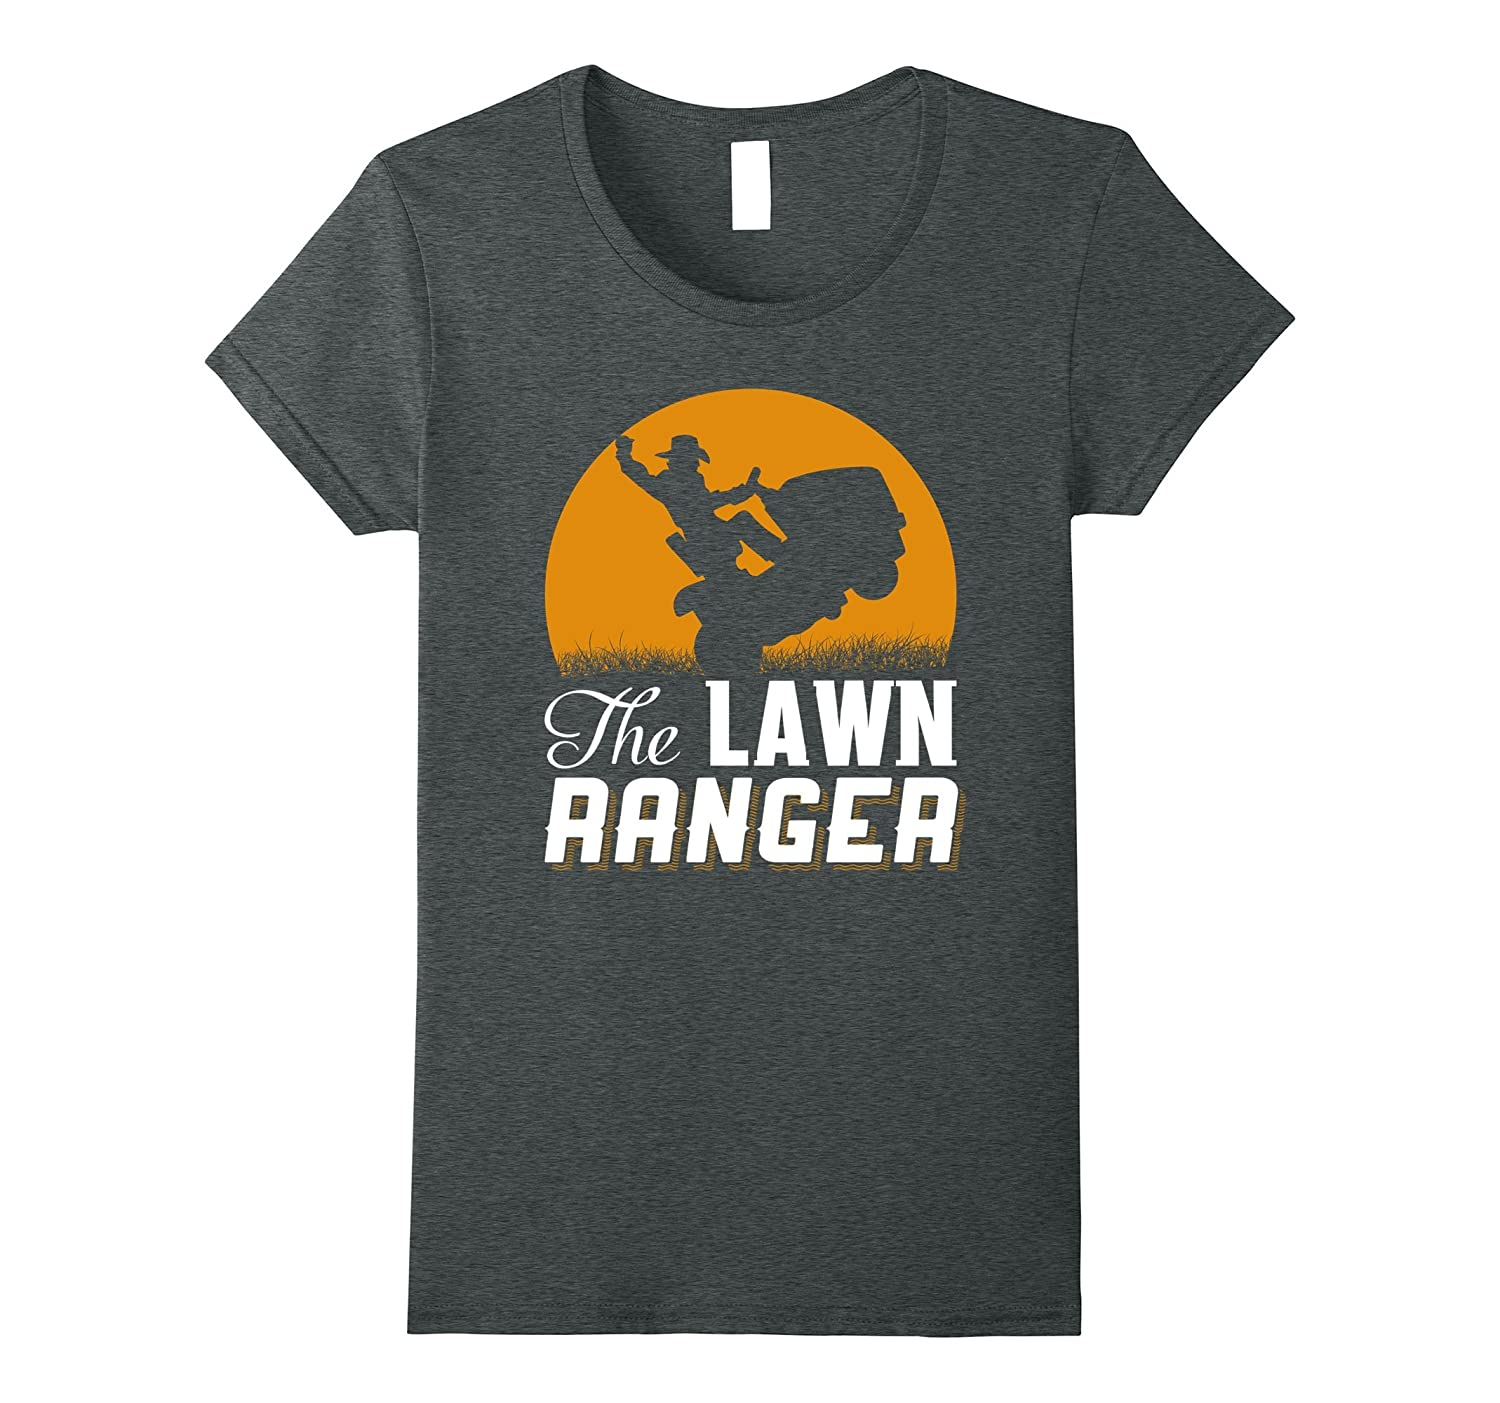 The Lawn Ranger – Funny Mowing T-shirt